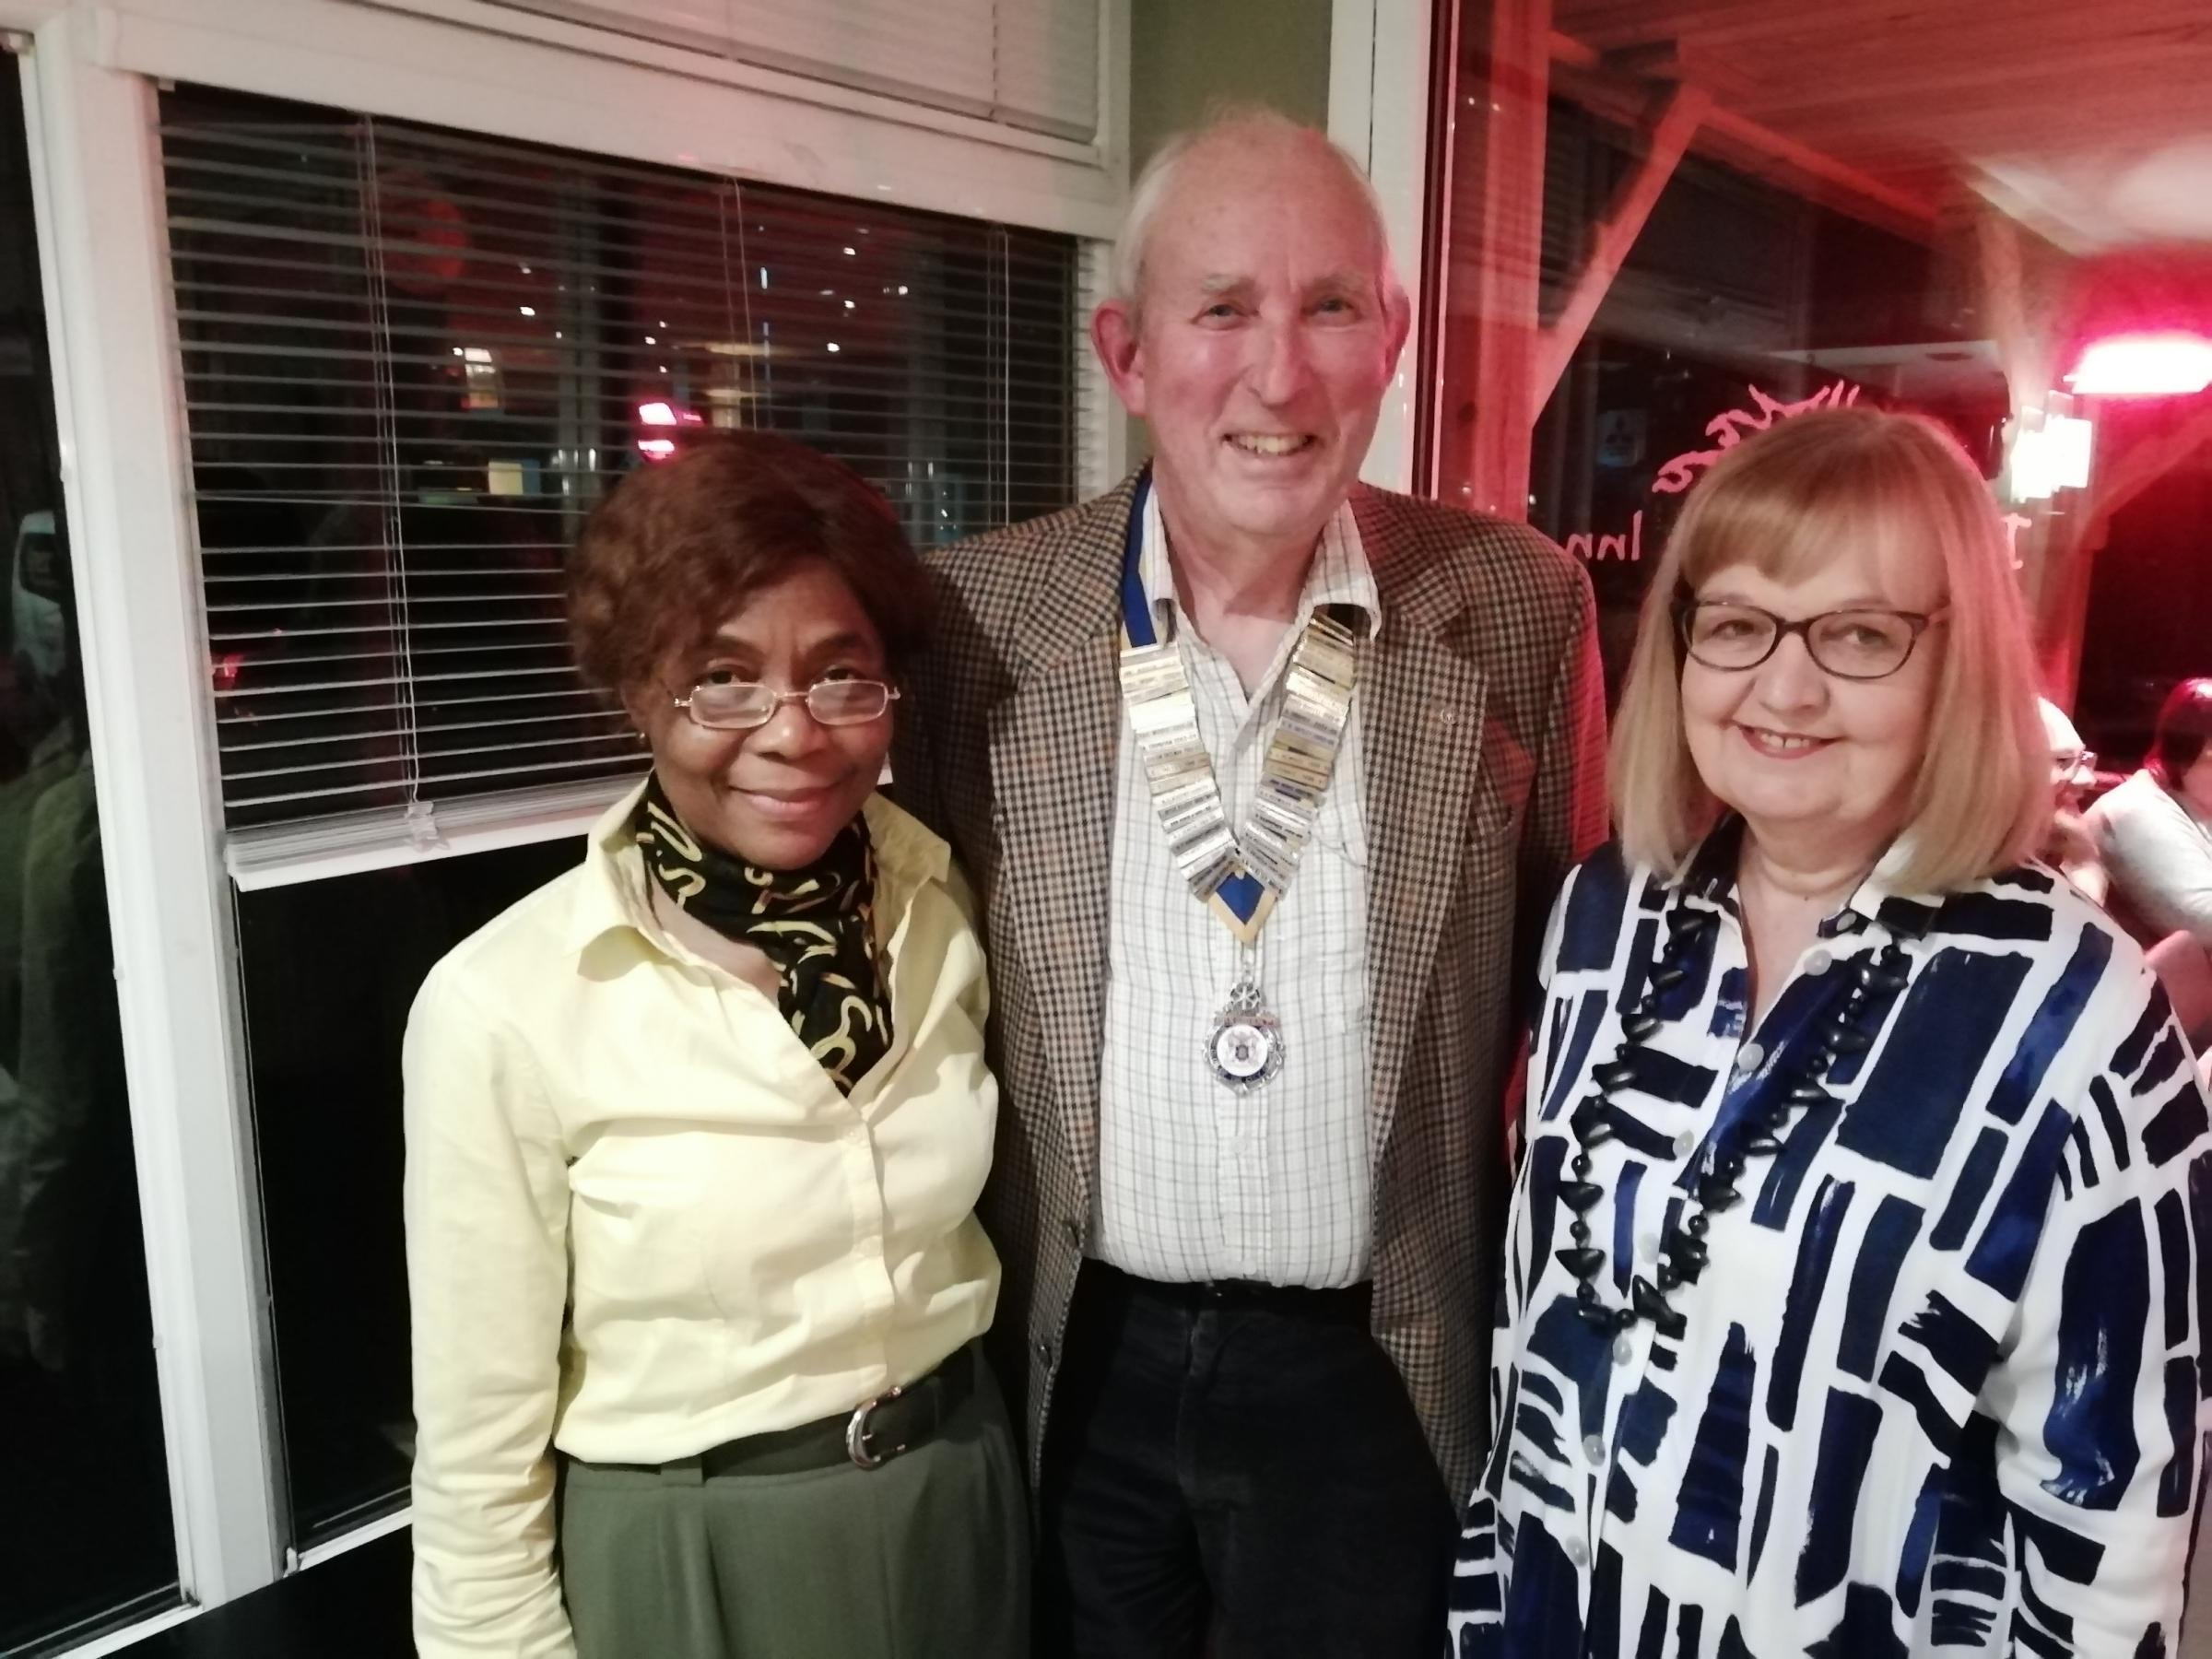 Catherine Chima-Okereke is welcomed into City of Hereford Rotary Club by president Rob Soutar and her sponsor Bobby Morris